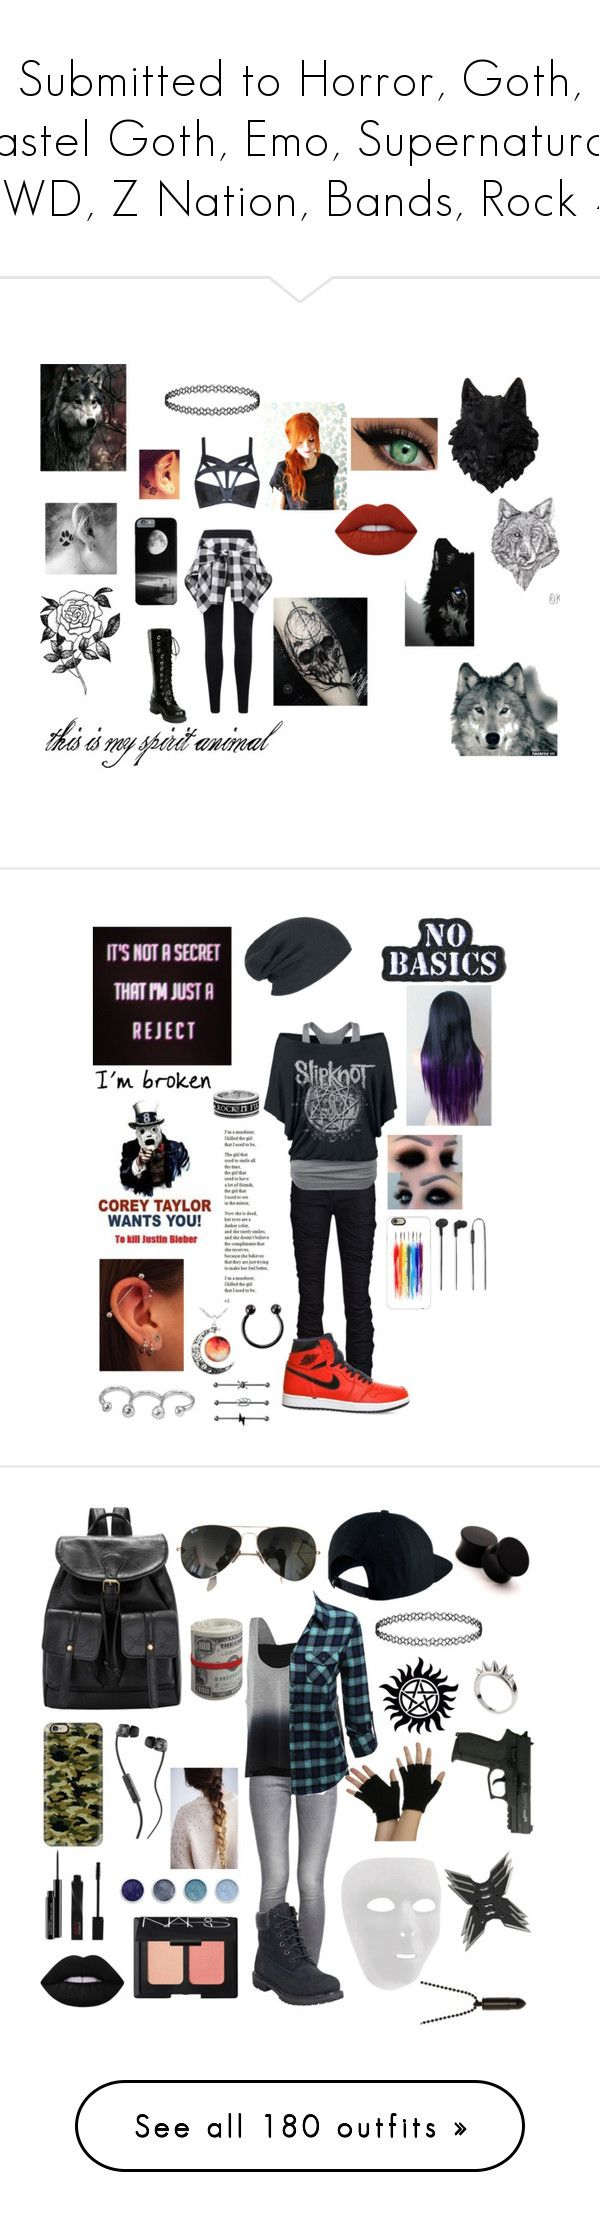 """""""Submitted to Horror, Goth, Pastel Goth, Emo, Supernatural, TWD, Z Nation, Bands, Rock 4"""" by dreadful103 ❤ liked on Polyvore featuring Agent Provocateur, Forever 21, Hot Topic, Lime Crime, Plein Sud, NIKE, Uno de 50, King Baby Studio, Hollywood Mirror and Casetify"""